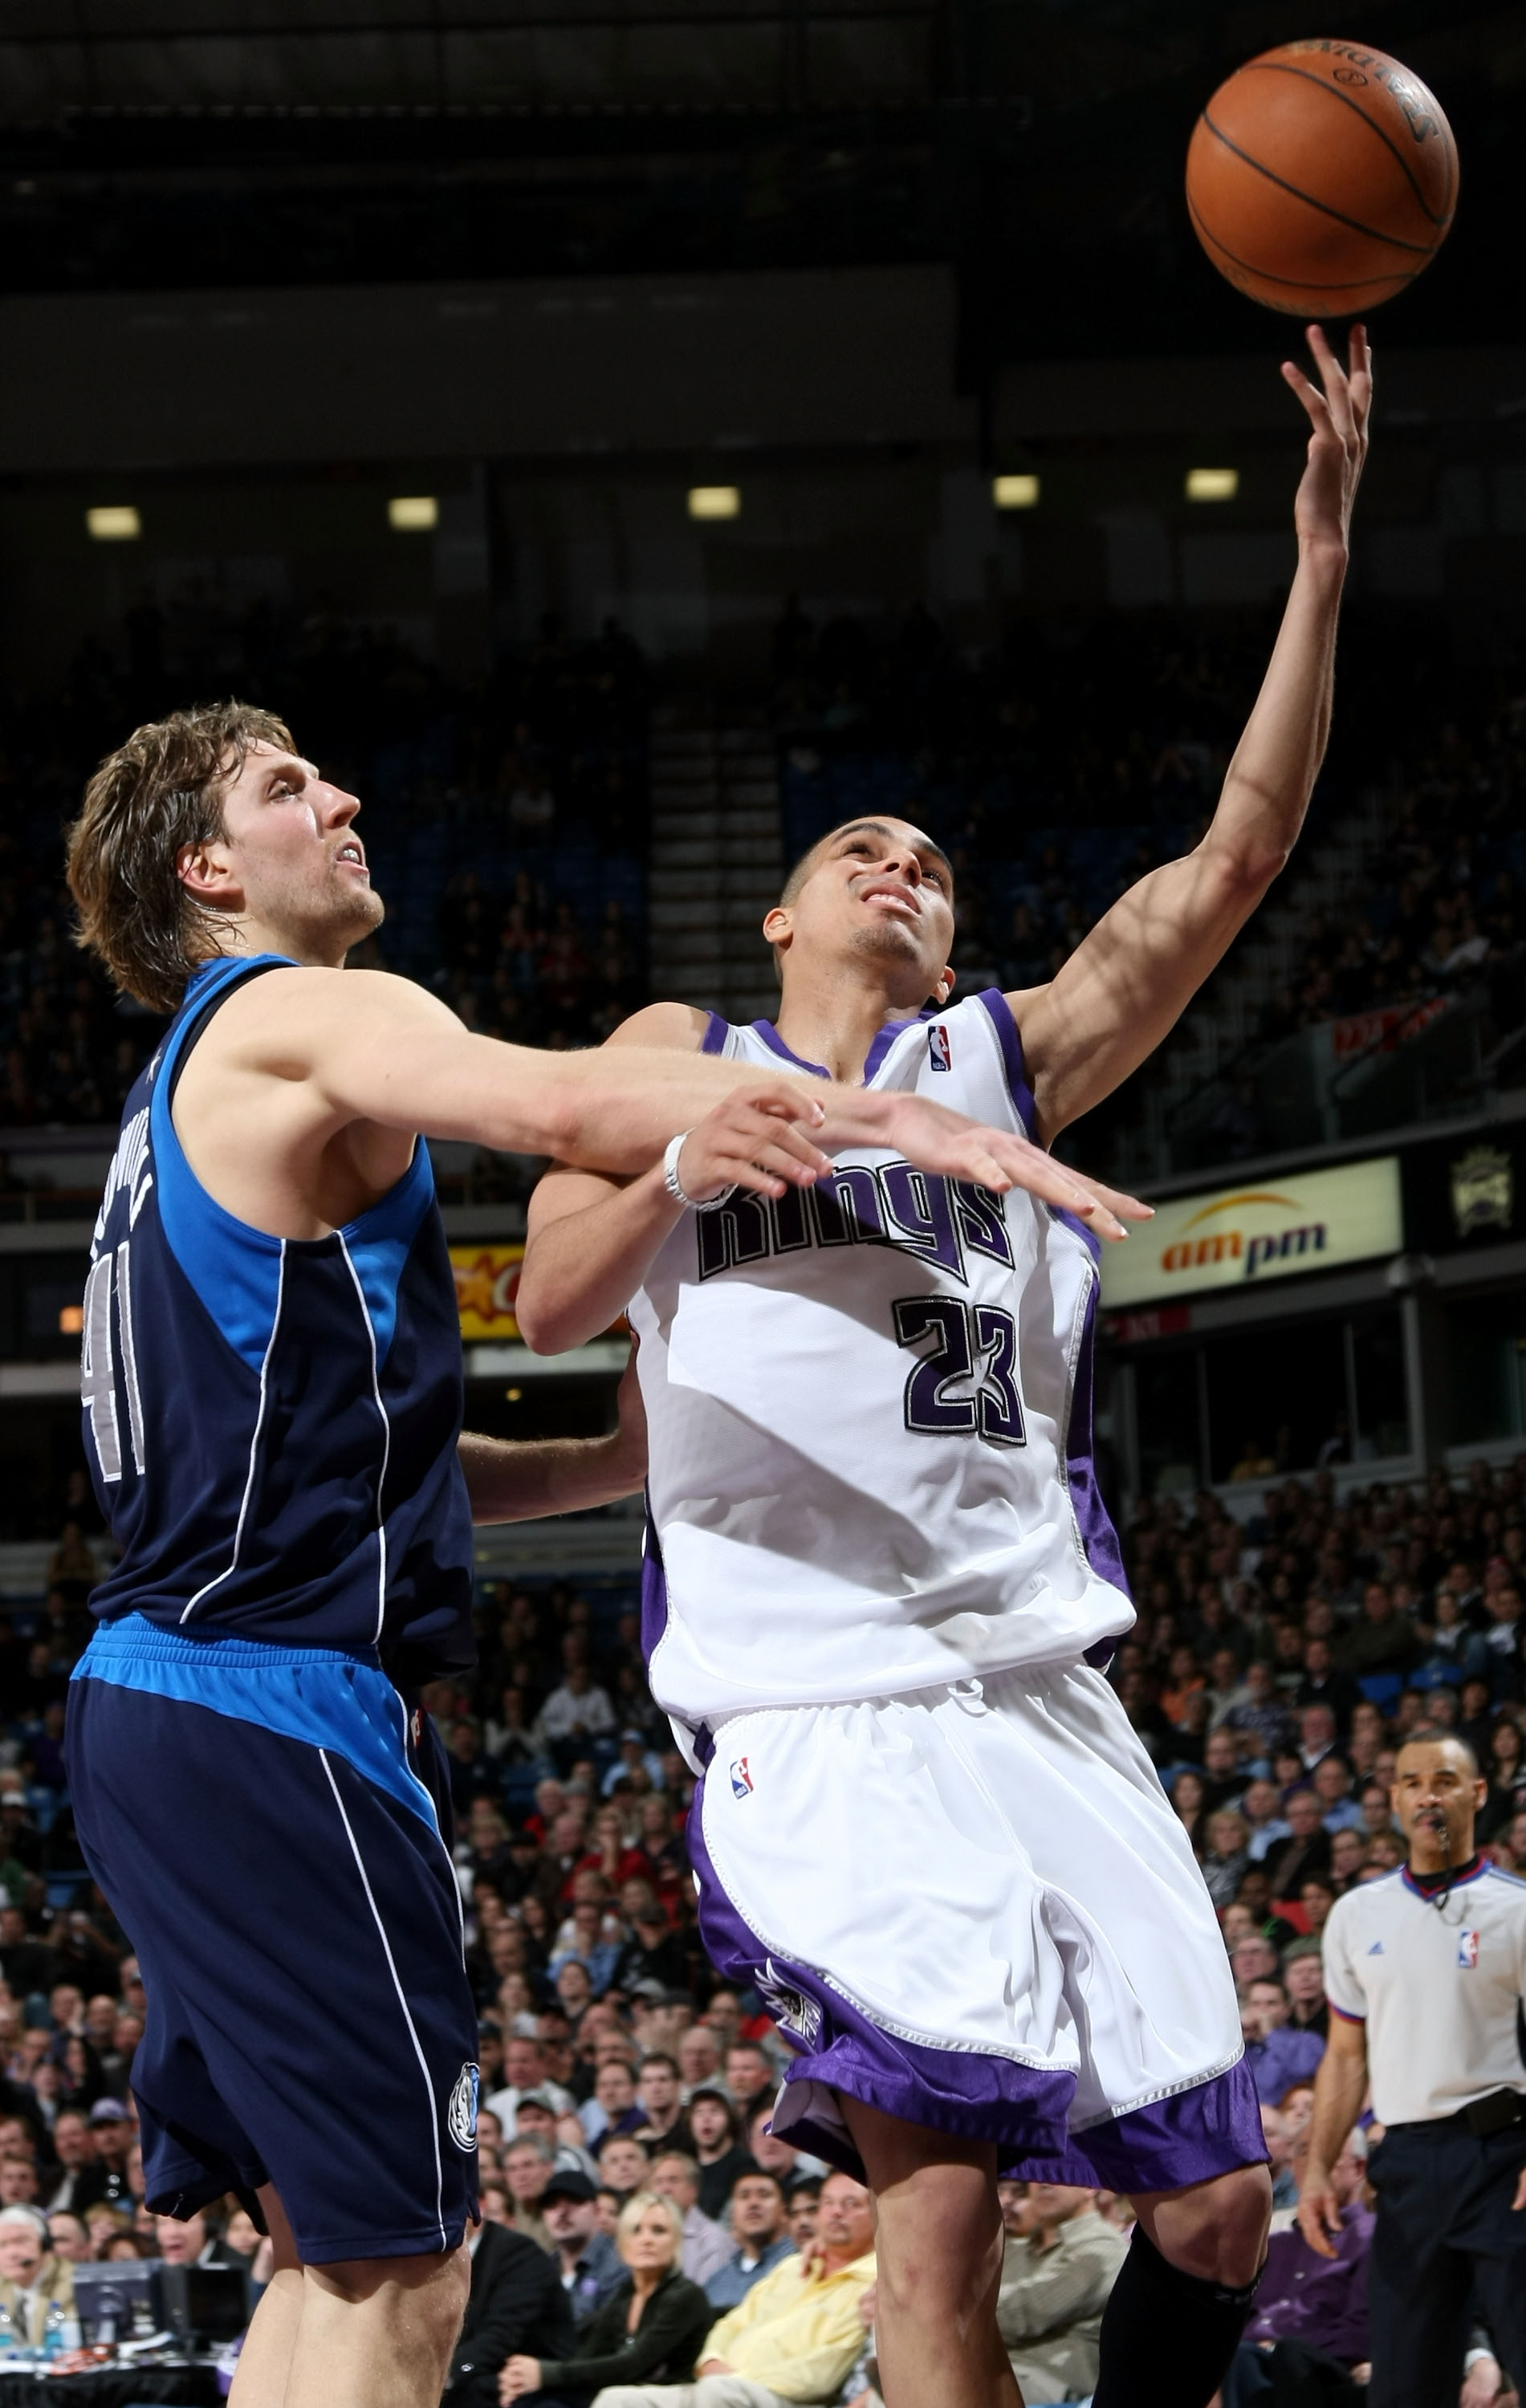 SACRAMENTO, CA - JANUARY 14:  Kevin Martin #23 of the Sacramento Kings shoots over Dirk Nowitzki #41 of the Dallas Mavericks during an NBA game at ARCO Arena January 14, 2008 in Sacramento, California. NOTE TO USER: User expressly acknowledges and agrees